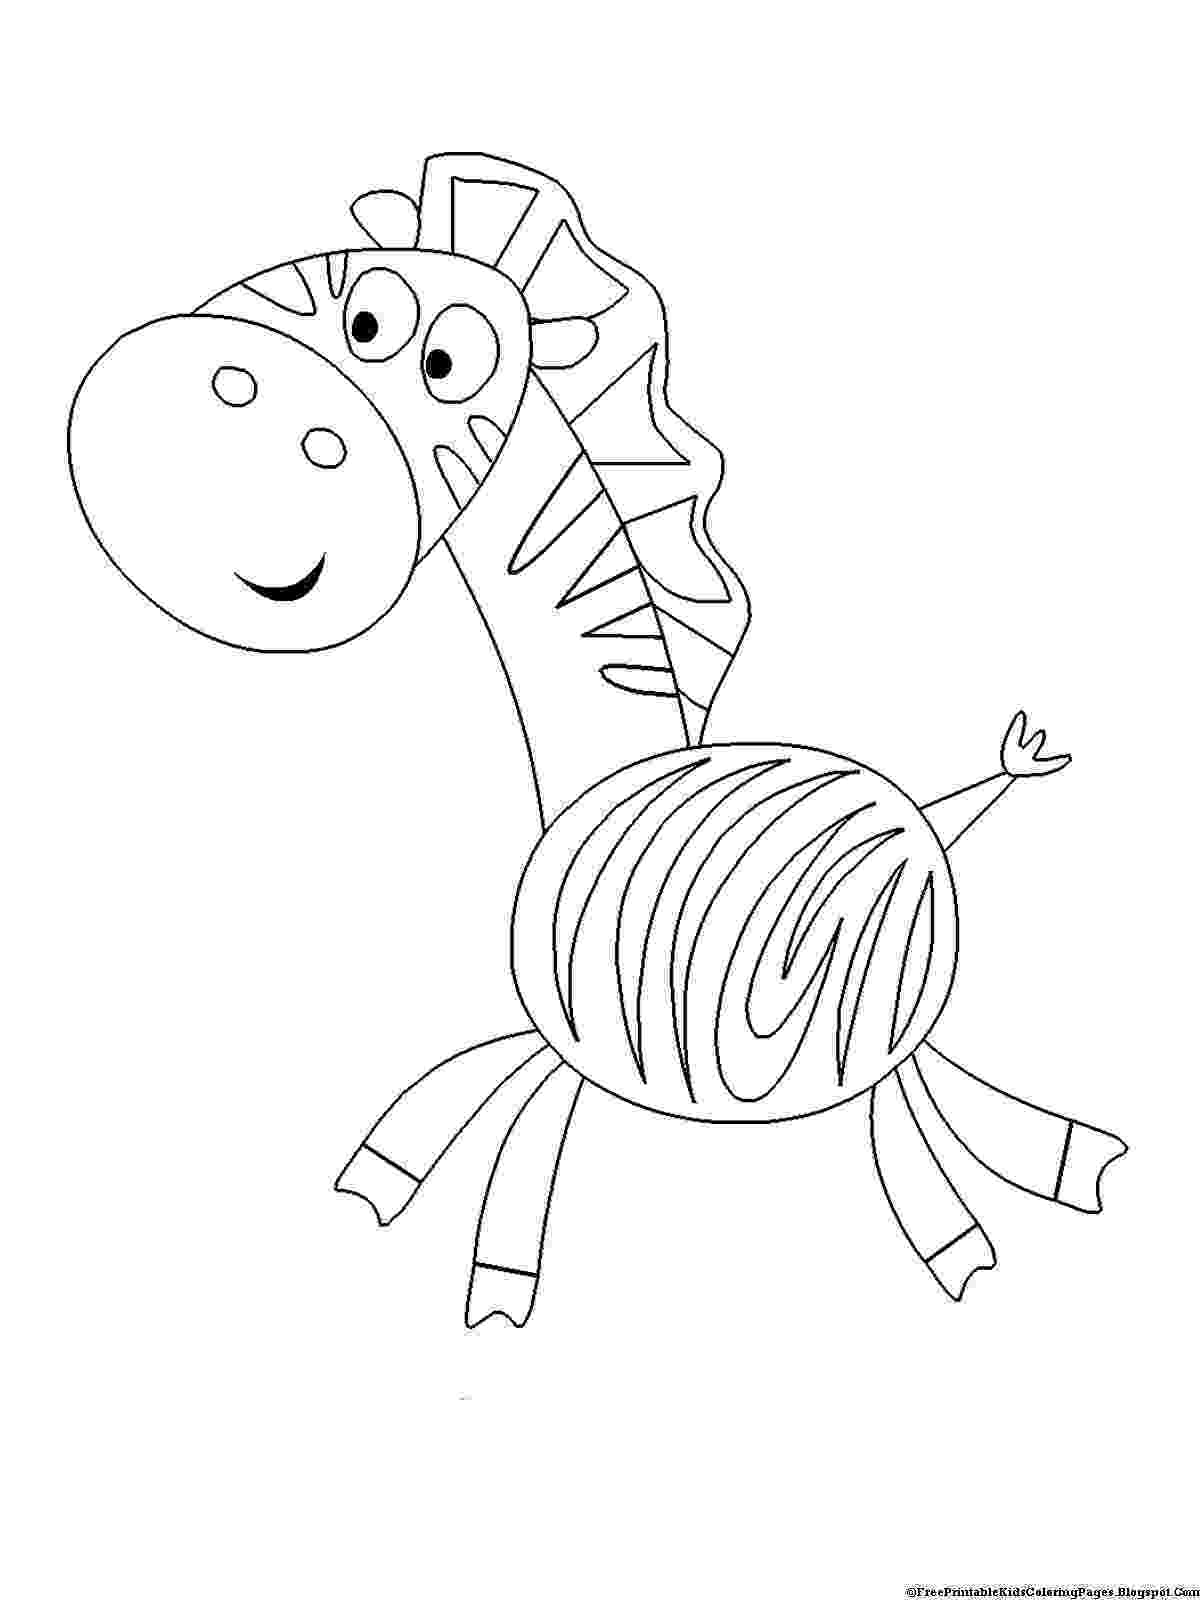 free printable coloring pages for kids unicorn coloring pages to download and print for free coloring pages kids for free printable